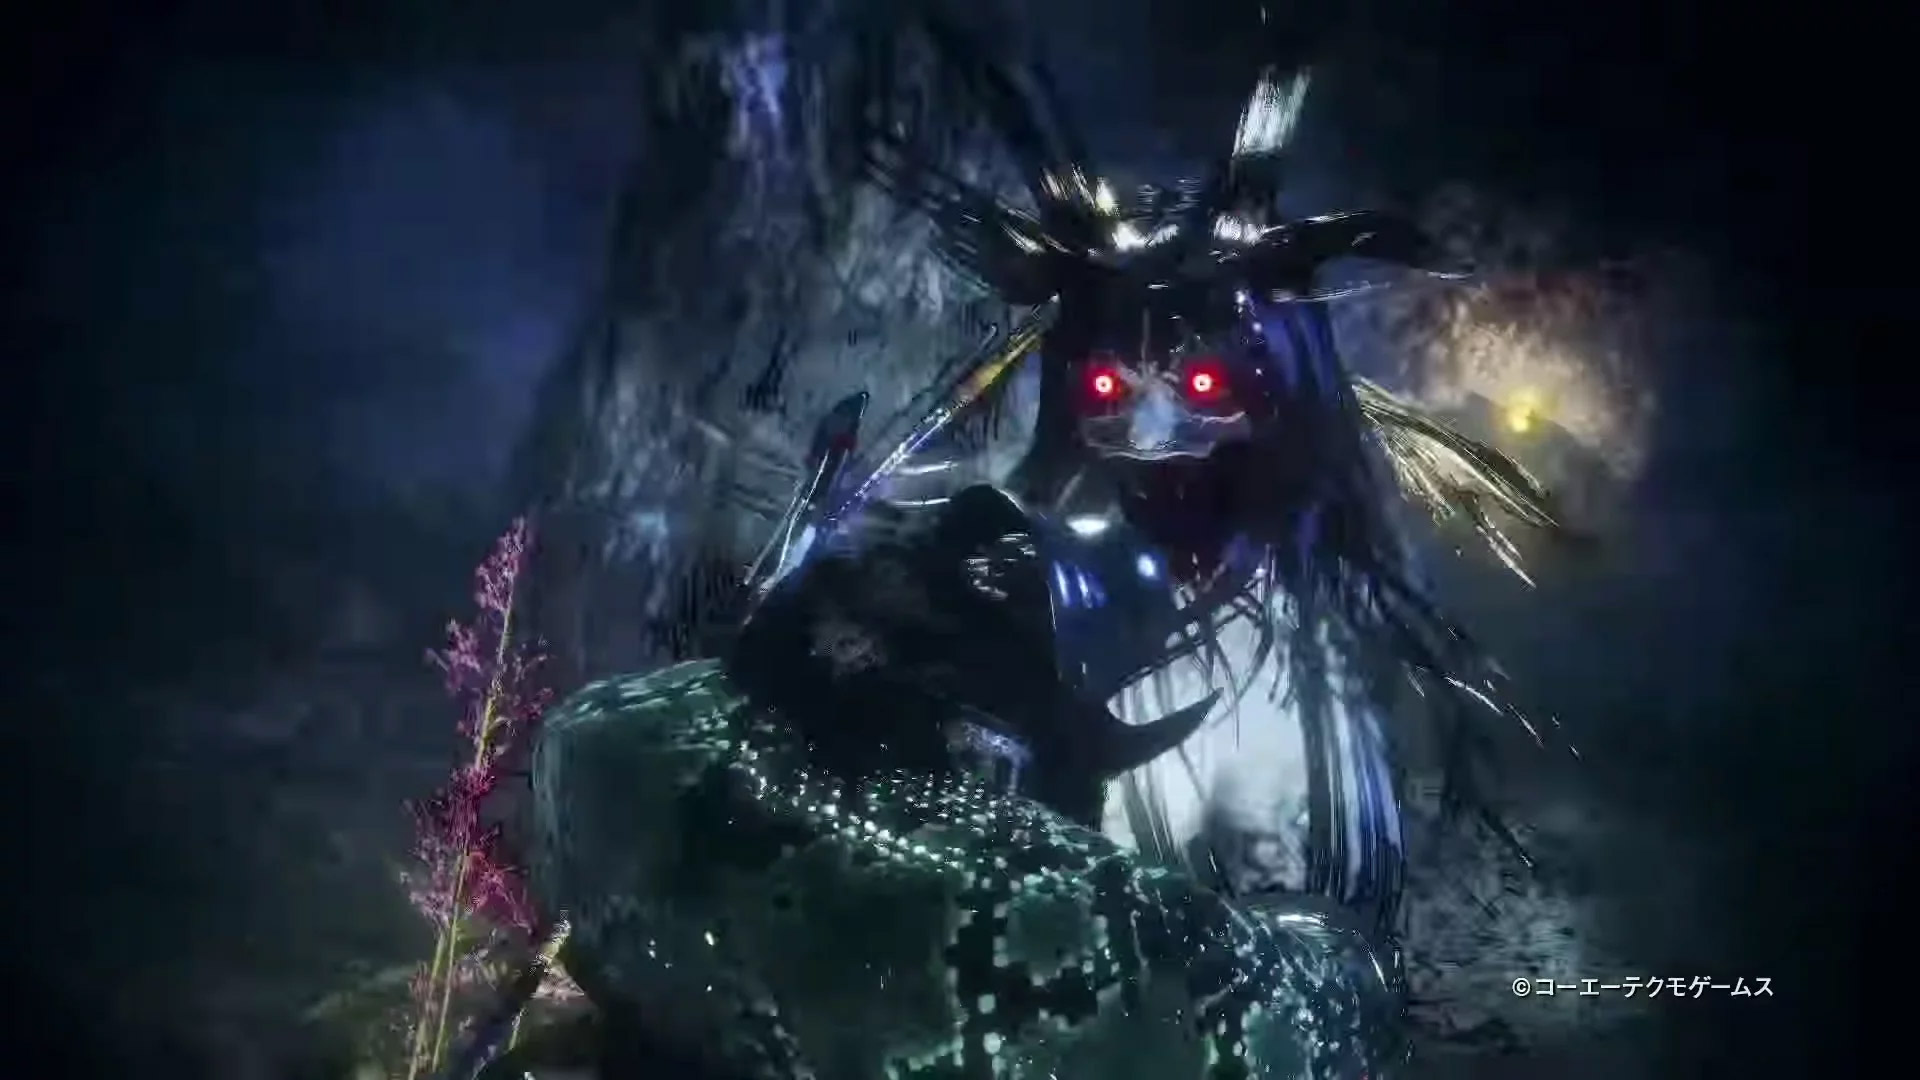 Nioh 2 is running a closed alpha on PS4 and it looks glorious screenshot